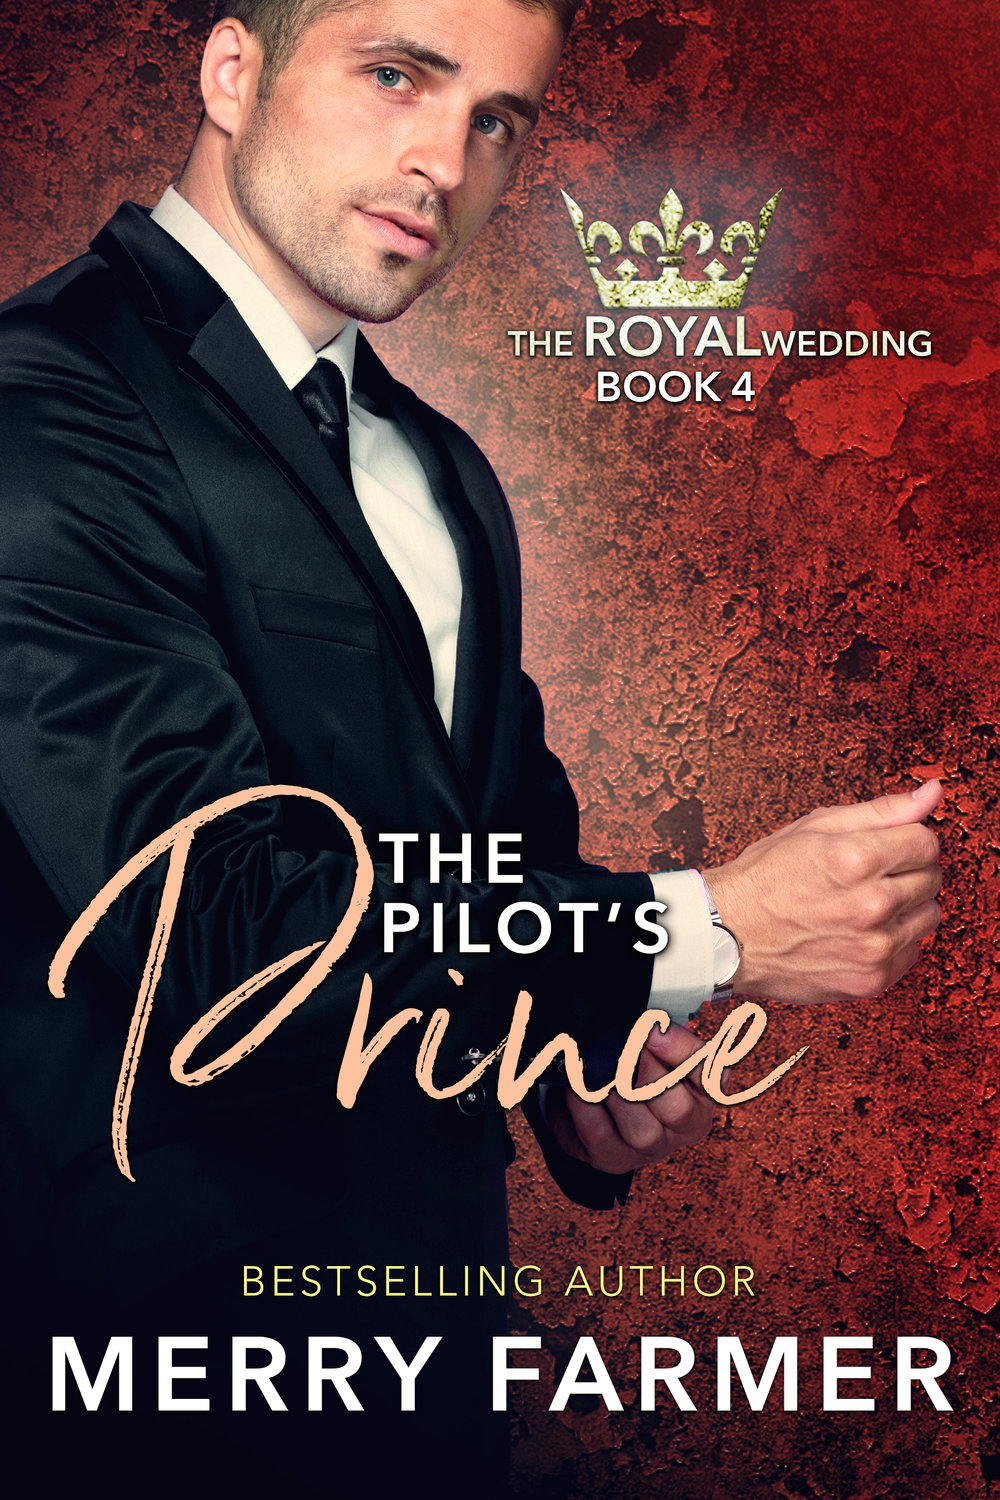 "The Pilot's Prince - by Merry Farmer (Book Four) - Prince Mikael ""Mack"" Magnusson has always been the black sheep of the Aegirian royal family. Instead of indulging in the perks of his royal status, he wanted to become a humble fisherman and to protect the environment. But his dreams were cut short when it was determined they weren't lofty enough, and ever since, he's been adrift, looking for a place to belong.Gloria Swann belonged in the RAF as a combat support pilot, but when her ambition to become a fast-jet fighter pilot was denied, she too was left out in the cold, wondering where she fit in. All she's ever wanted was to stand up for a cause she believes in and to fight for what is right.When Gloria literally crashes into Mack's life, just as the preparations for the royal wedding reach their climax, not only does Mack find himself with a powerful ally as another attempt to stop the wedding is made, he finds himself falling in love. The connection Gloria and Mack feel proves that soulmates do exist, and that love can conquer all.And we might just get to see who's been trying to stop the royal wedding too…maybe….PLEASE BE ADVISED: Steam Level - Hot"